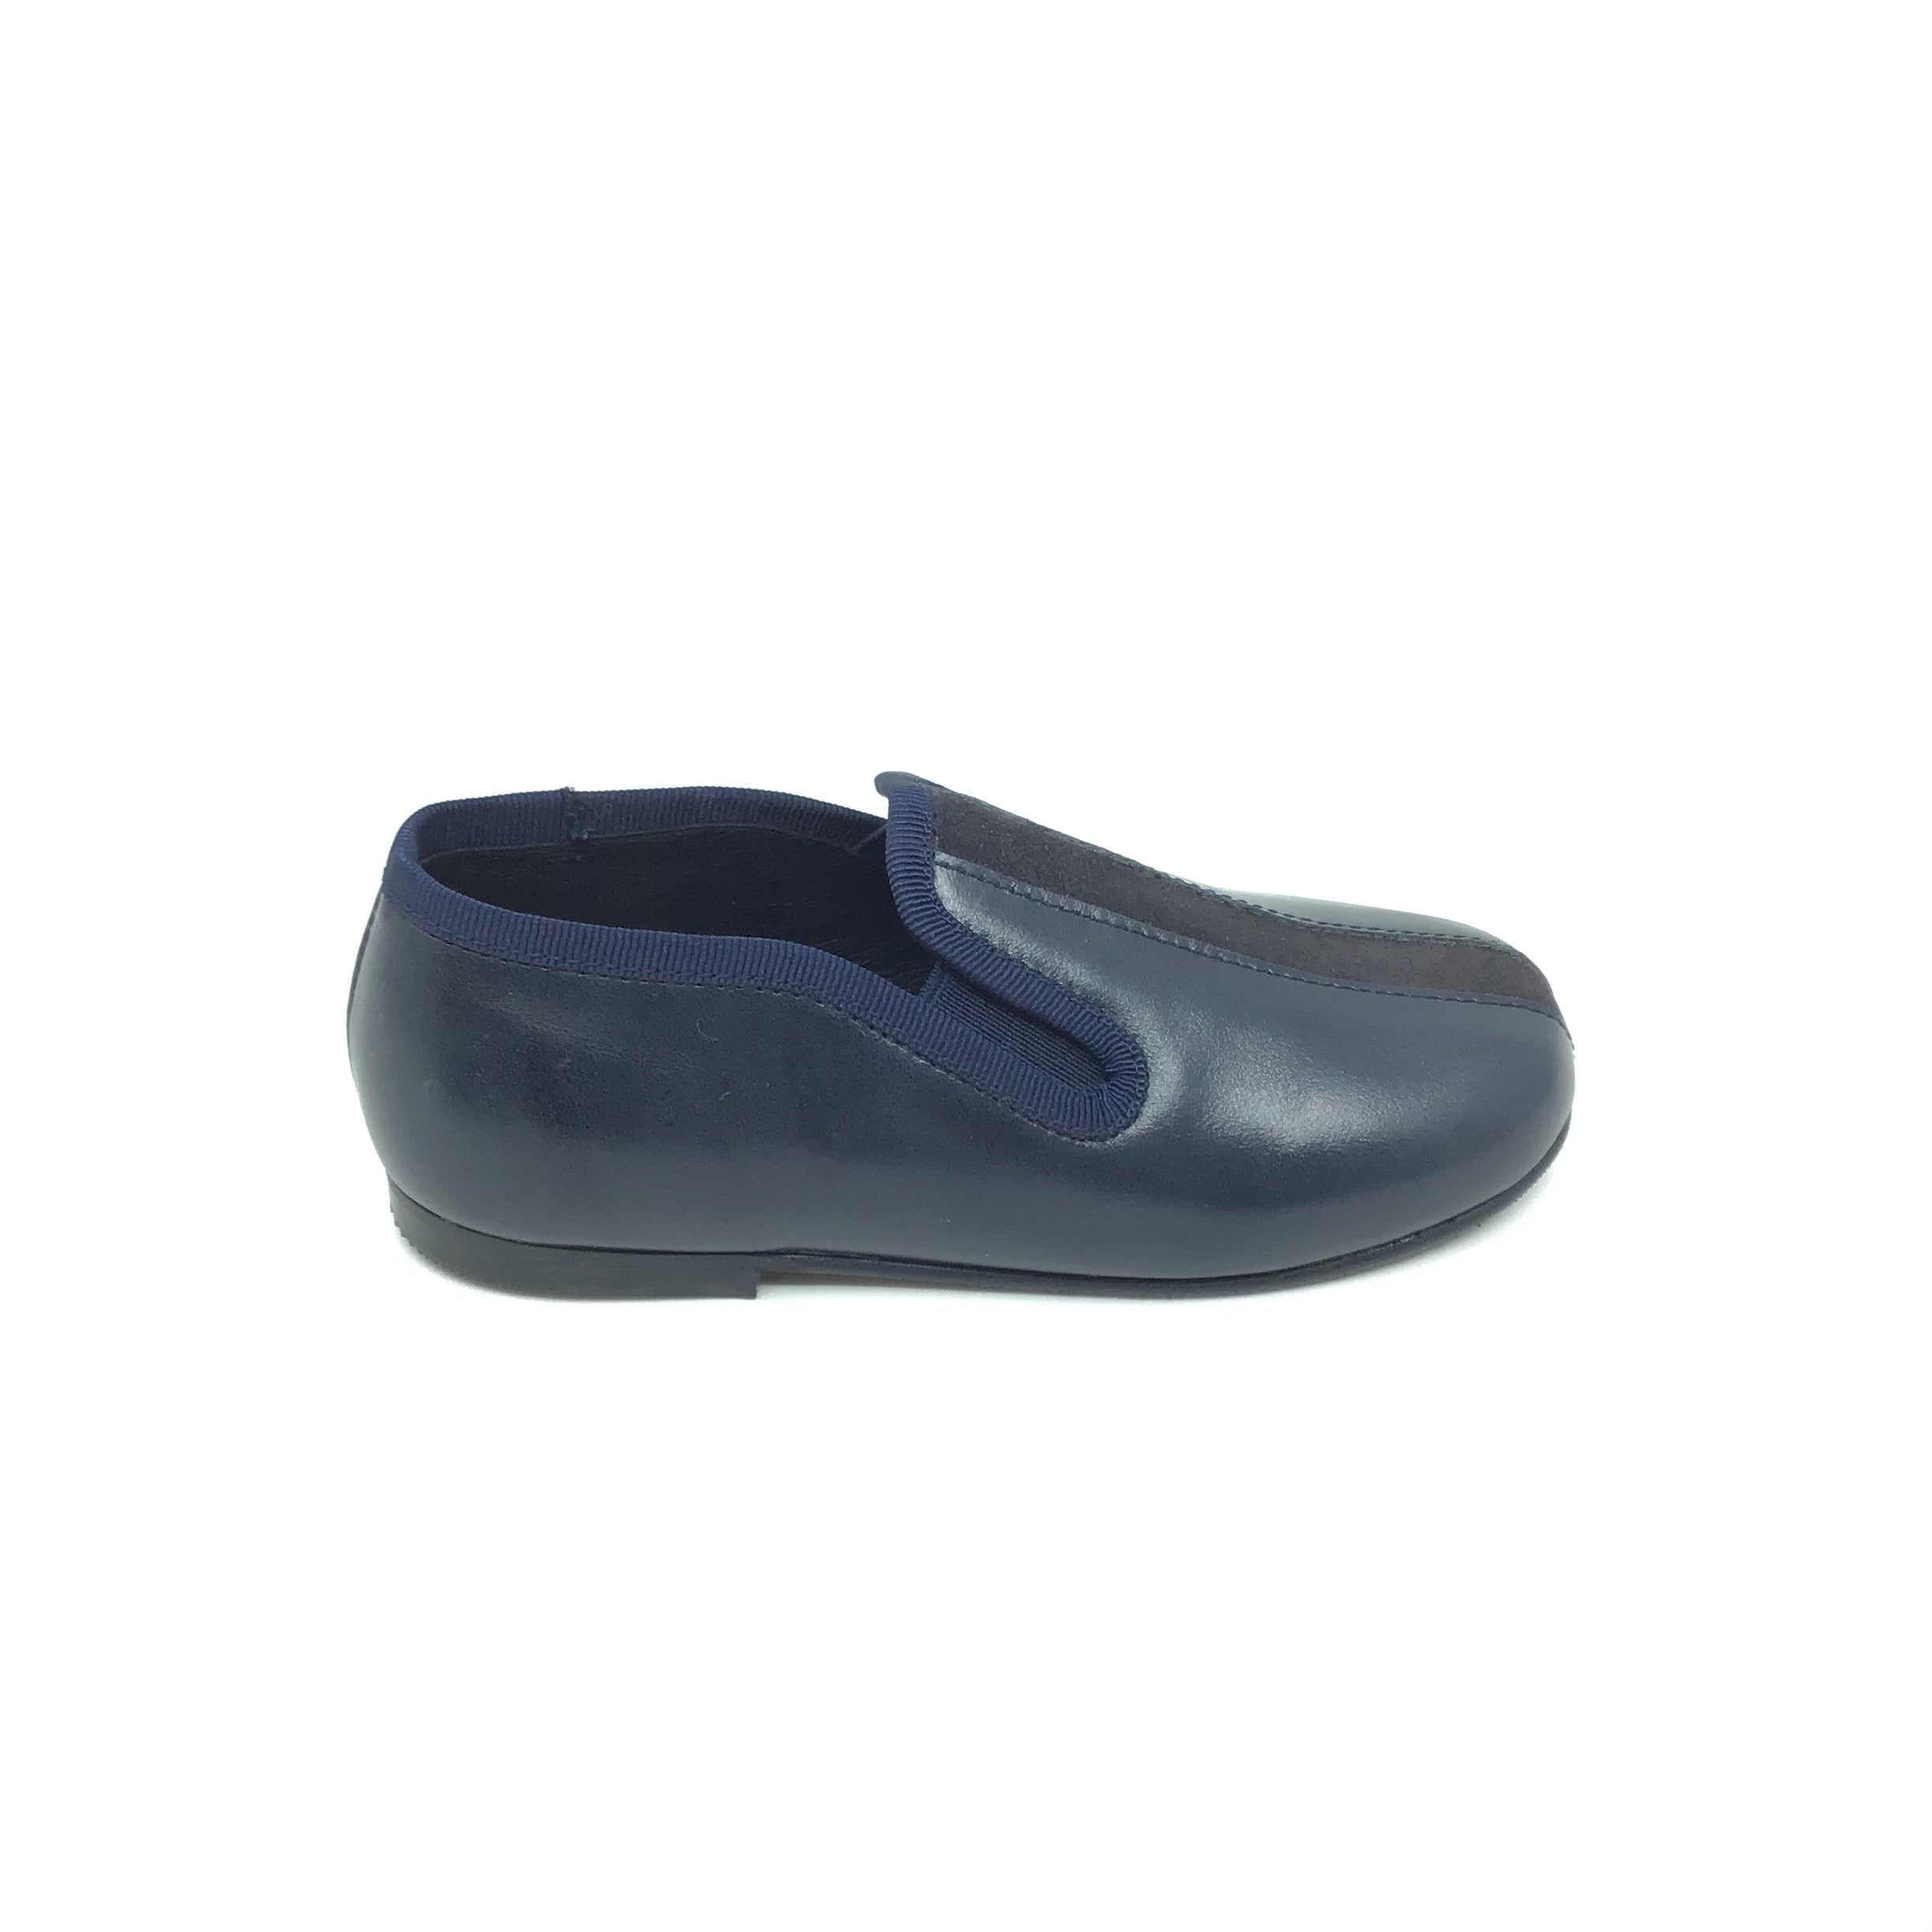 Luccini Blue Slip On with Navy Suede Center